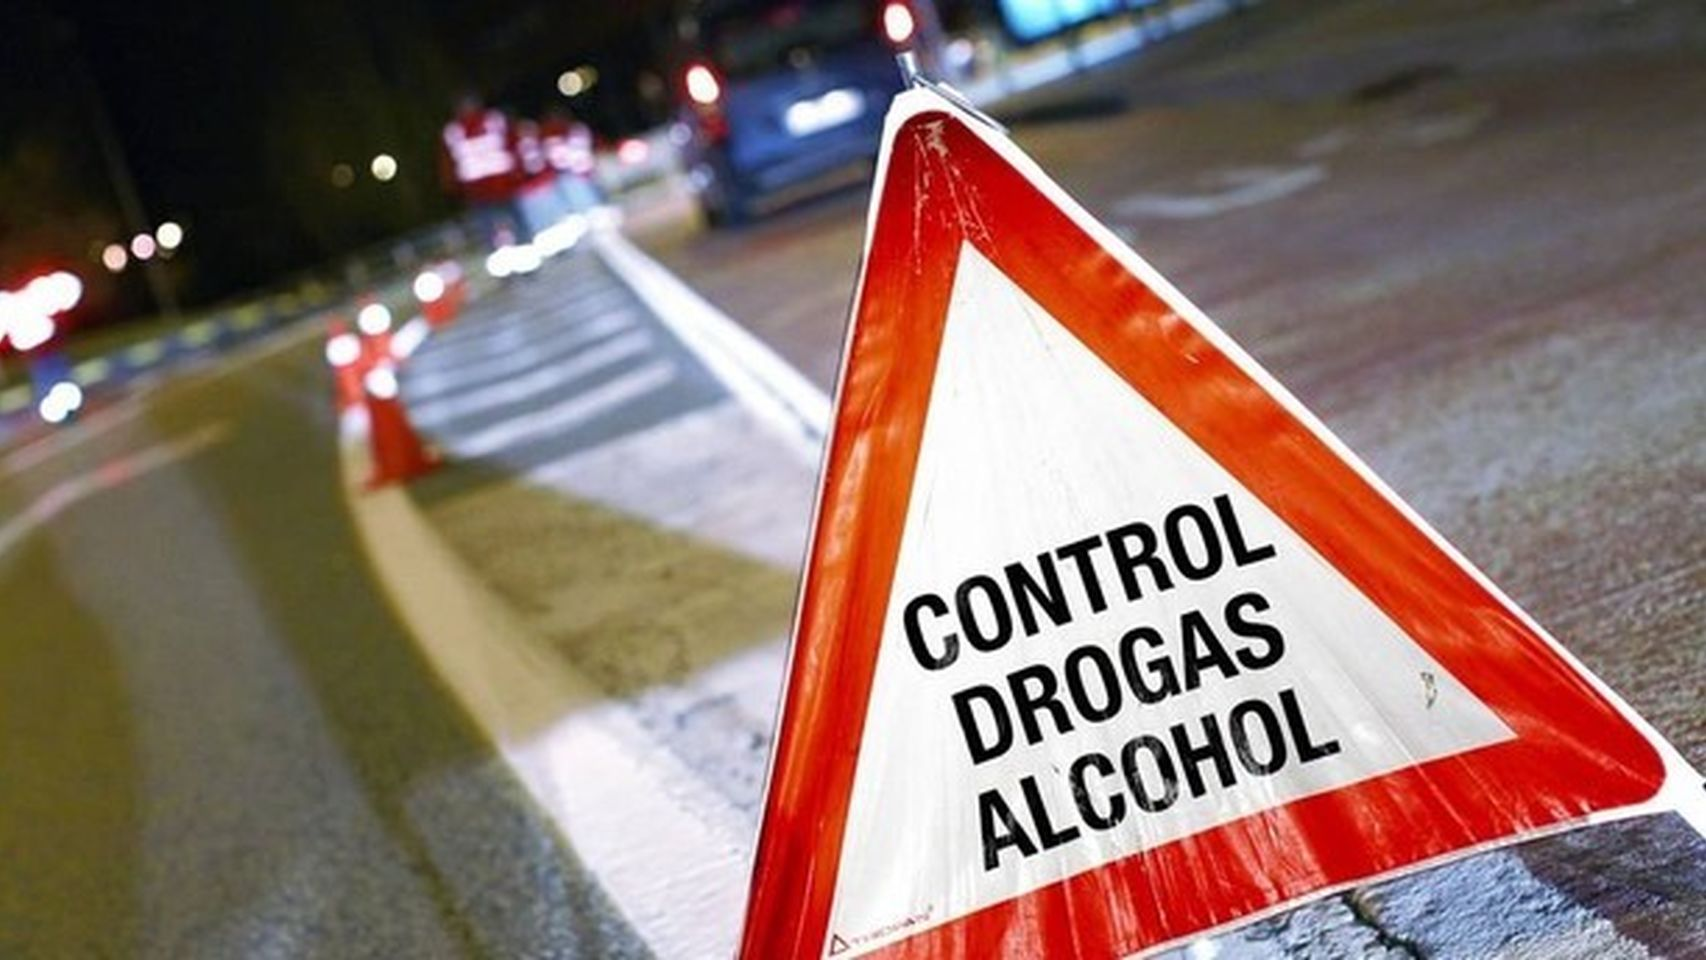 Controles de drogas y alcohol